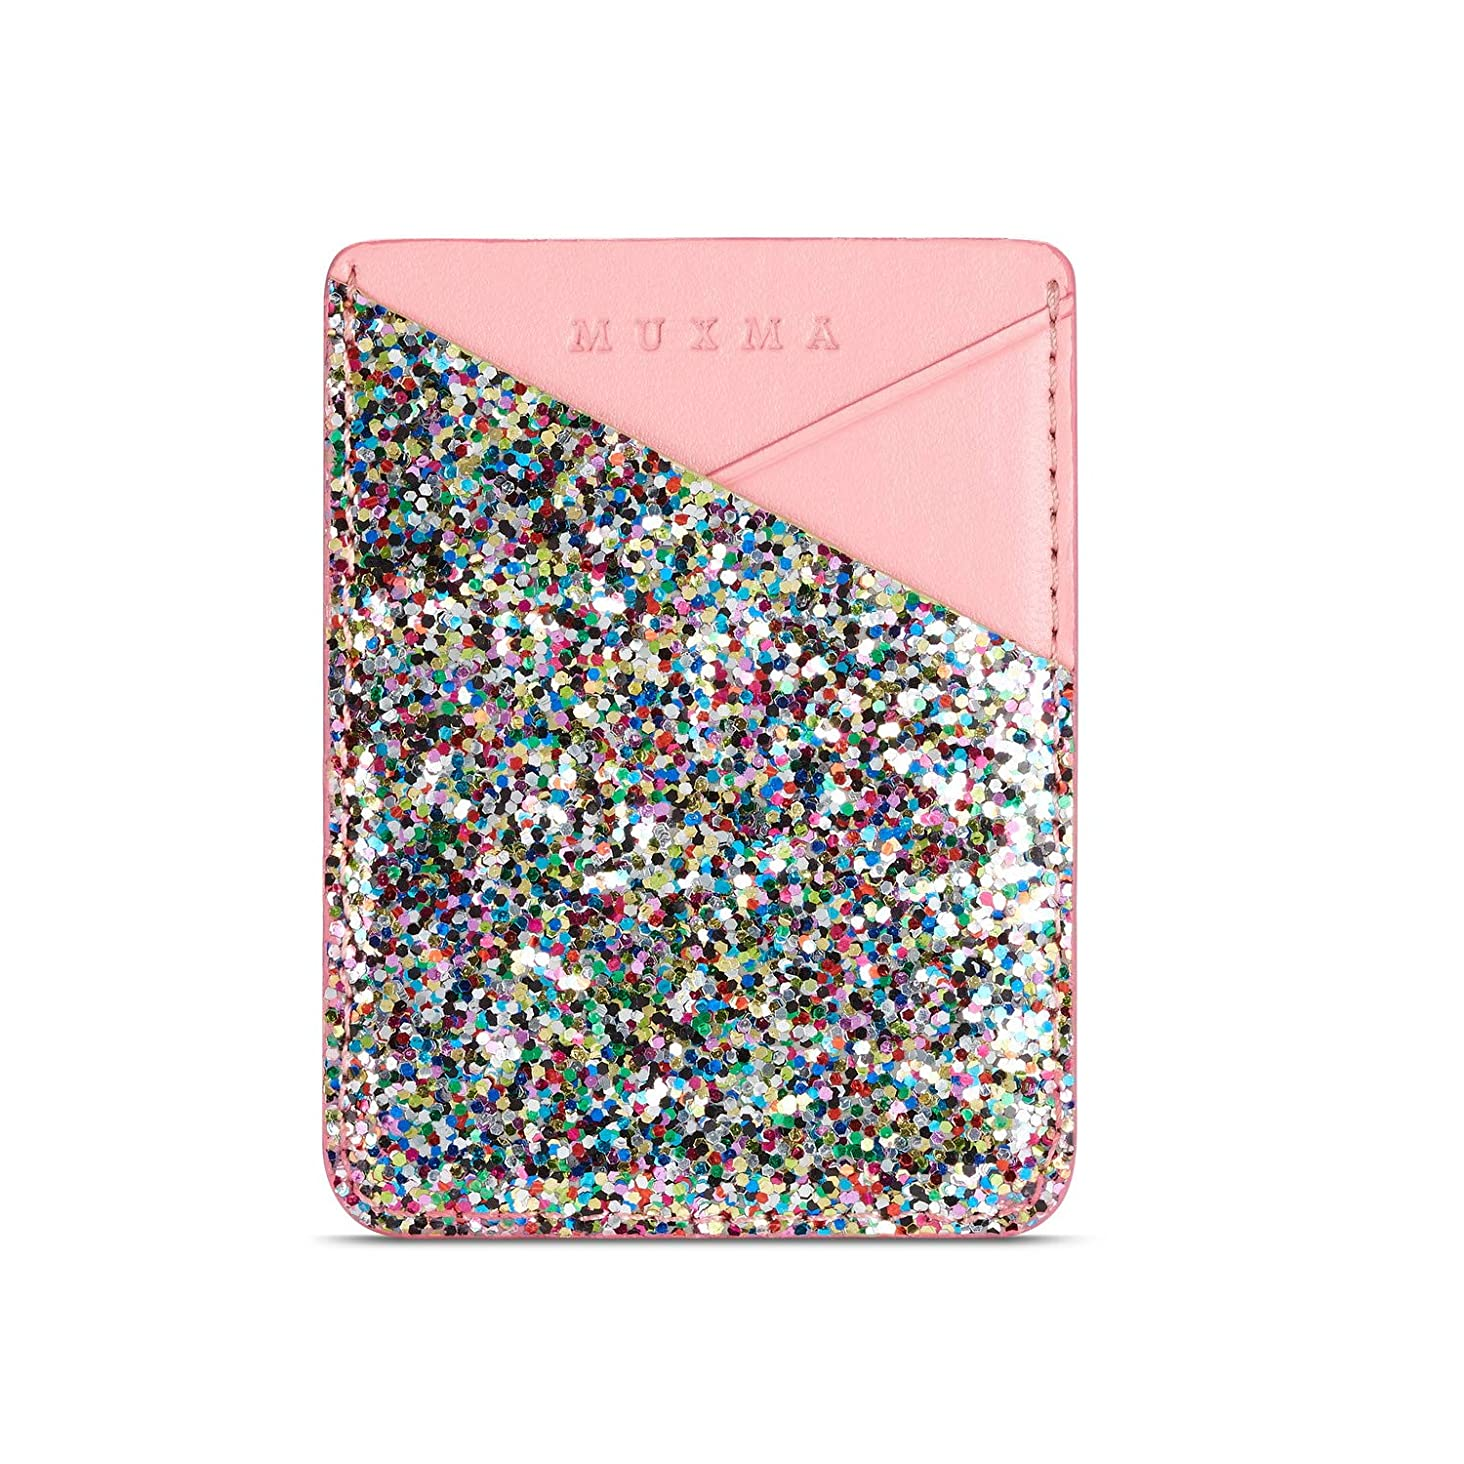 3M Adhesive Purse,Glitter Slim 2 Card Slots Wallet Pocket Stick on Phone/Tablets